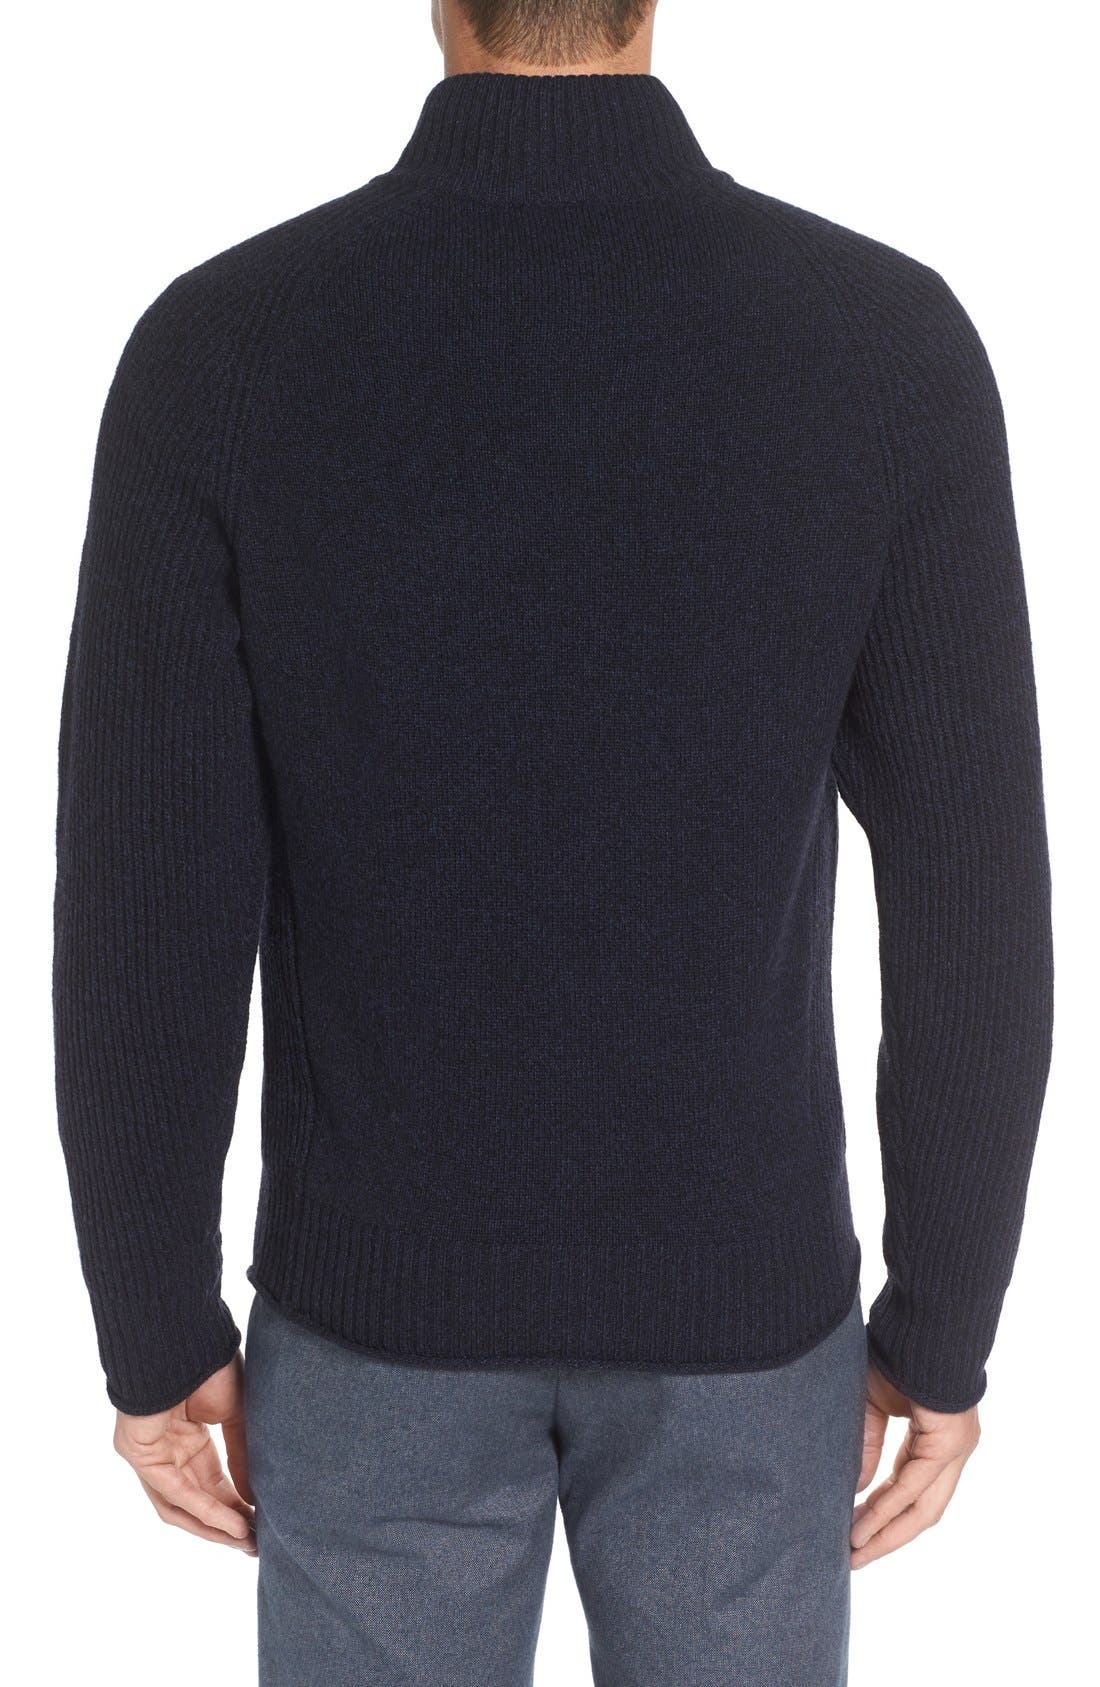 Stredwick Lambswool Sweater,                             Alternate thumbnail 10, color,